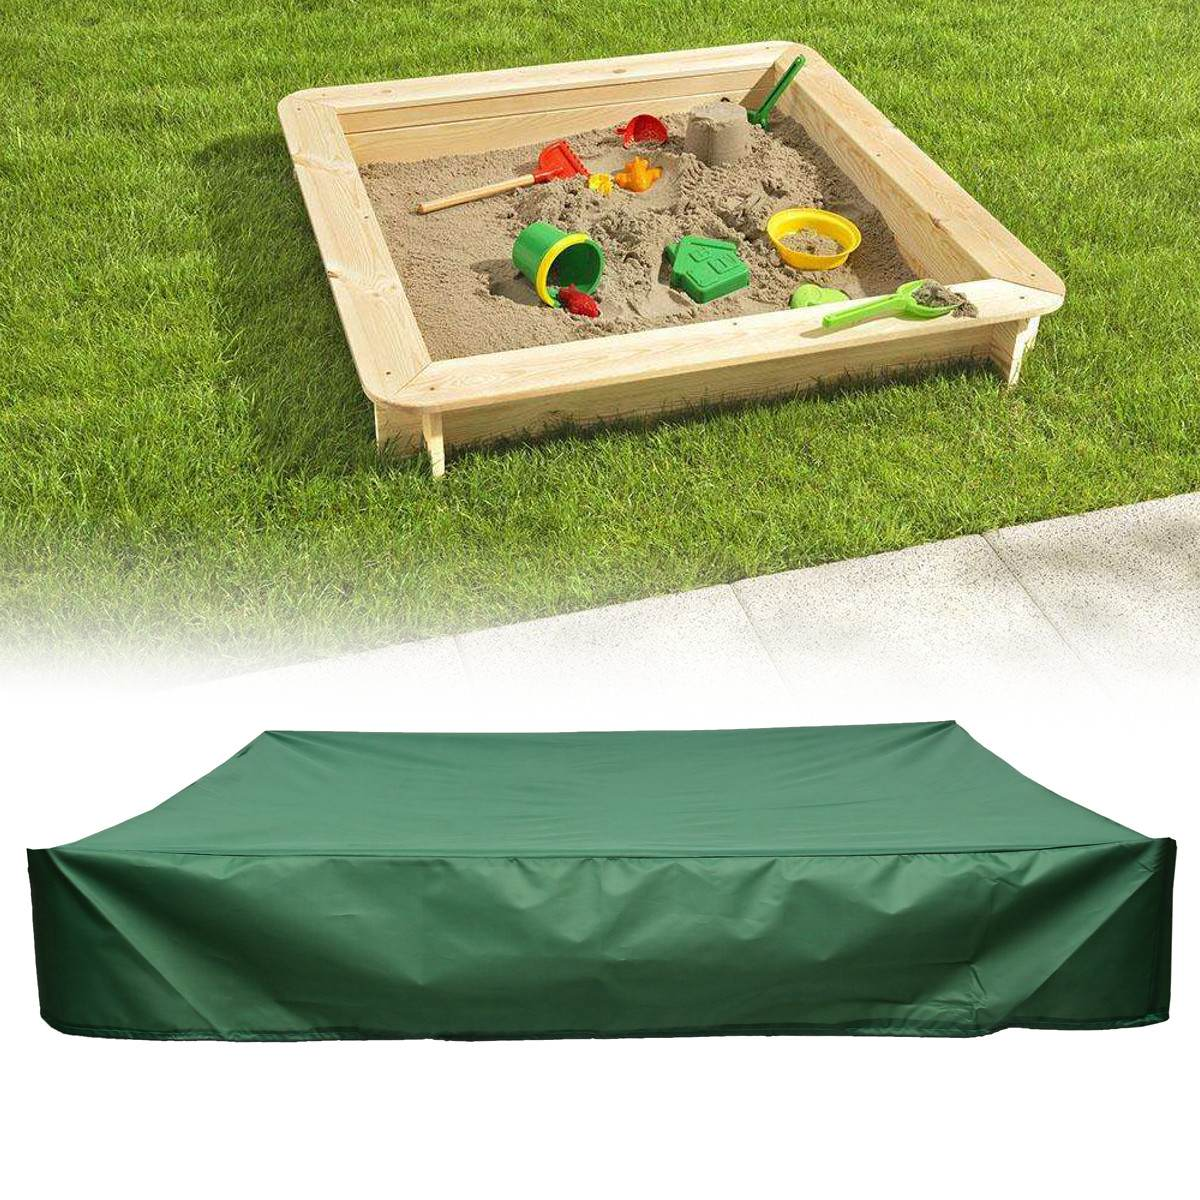 Sporting Square Waterproof Oxford Cloth Dust Cover Canopy Drawstring Sandbox Sandpit Dustproof Cover 120/150/180/200cm All-purpose Dust Covers Household Merchandises